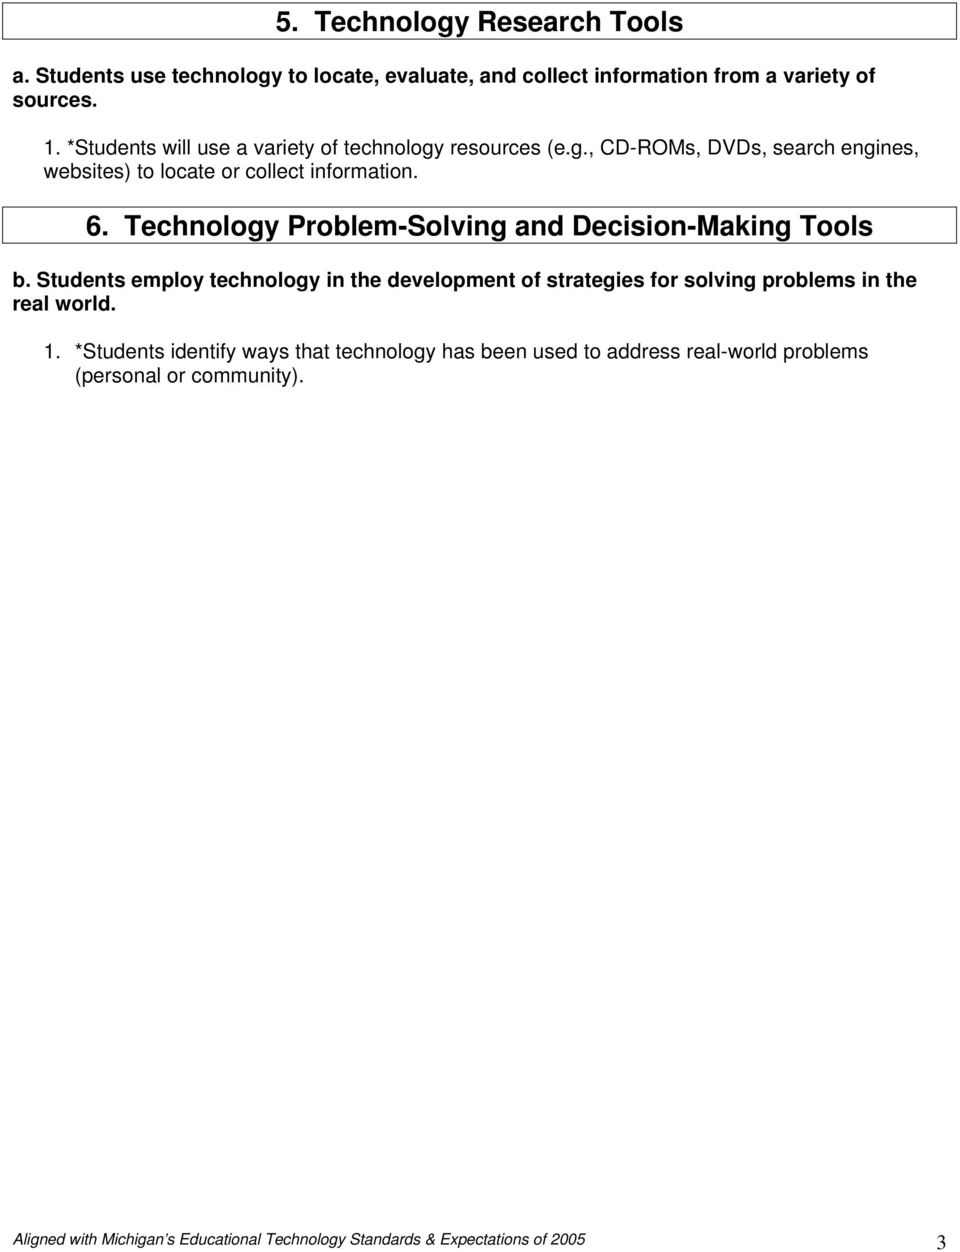 Technology Problem-Solving and Decision-Making Tools b. Students employ technology in the development of strategies for solving problems in the real world.